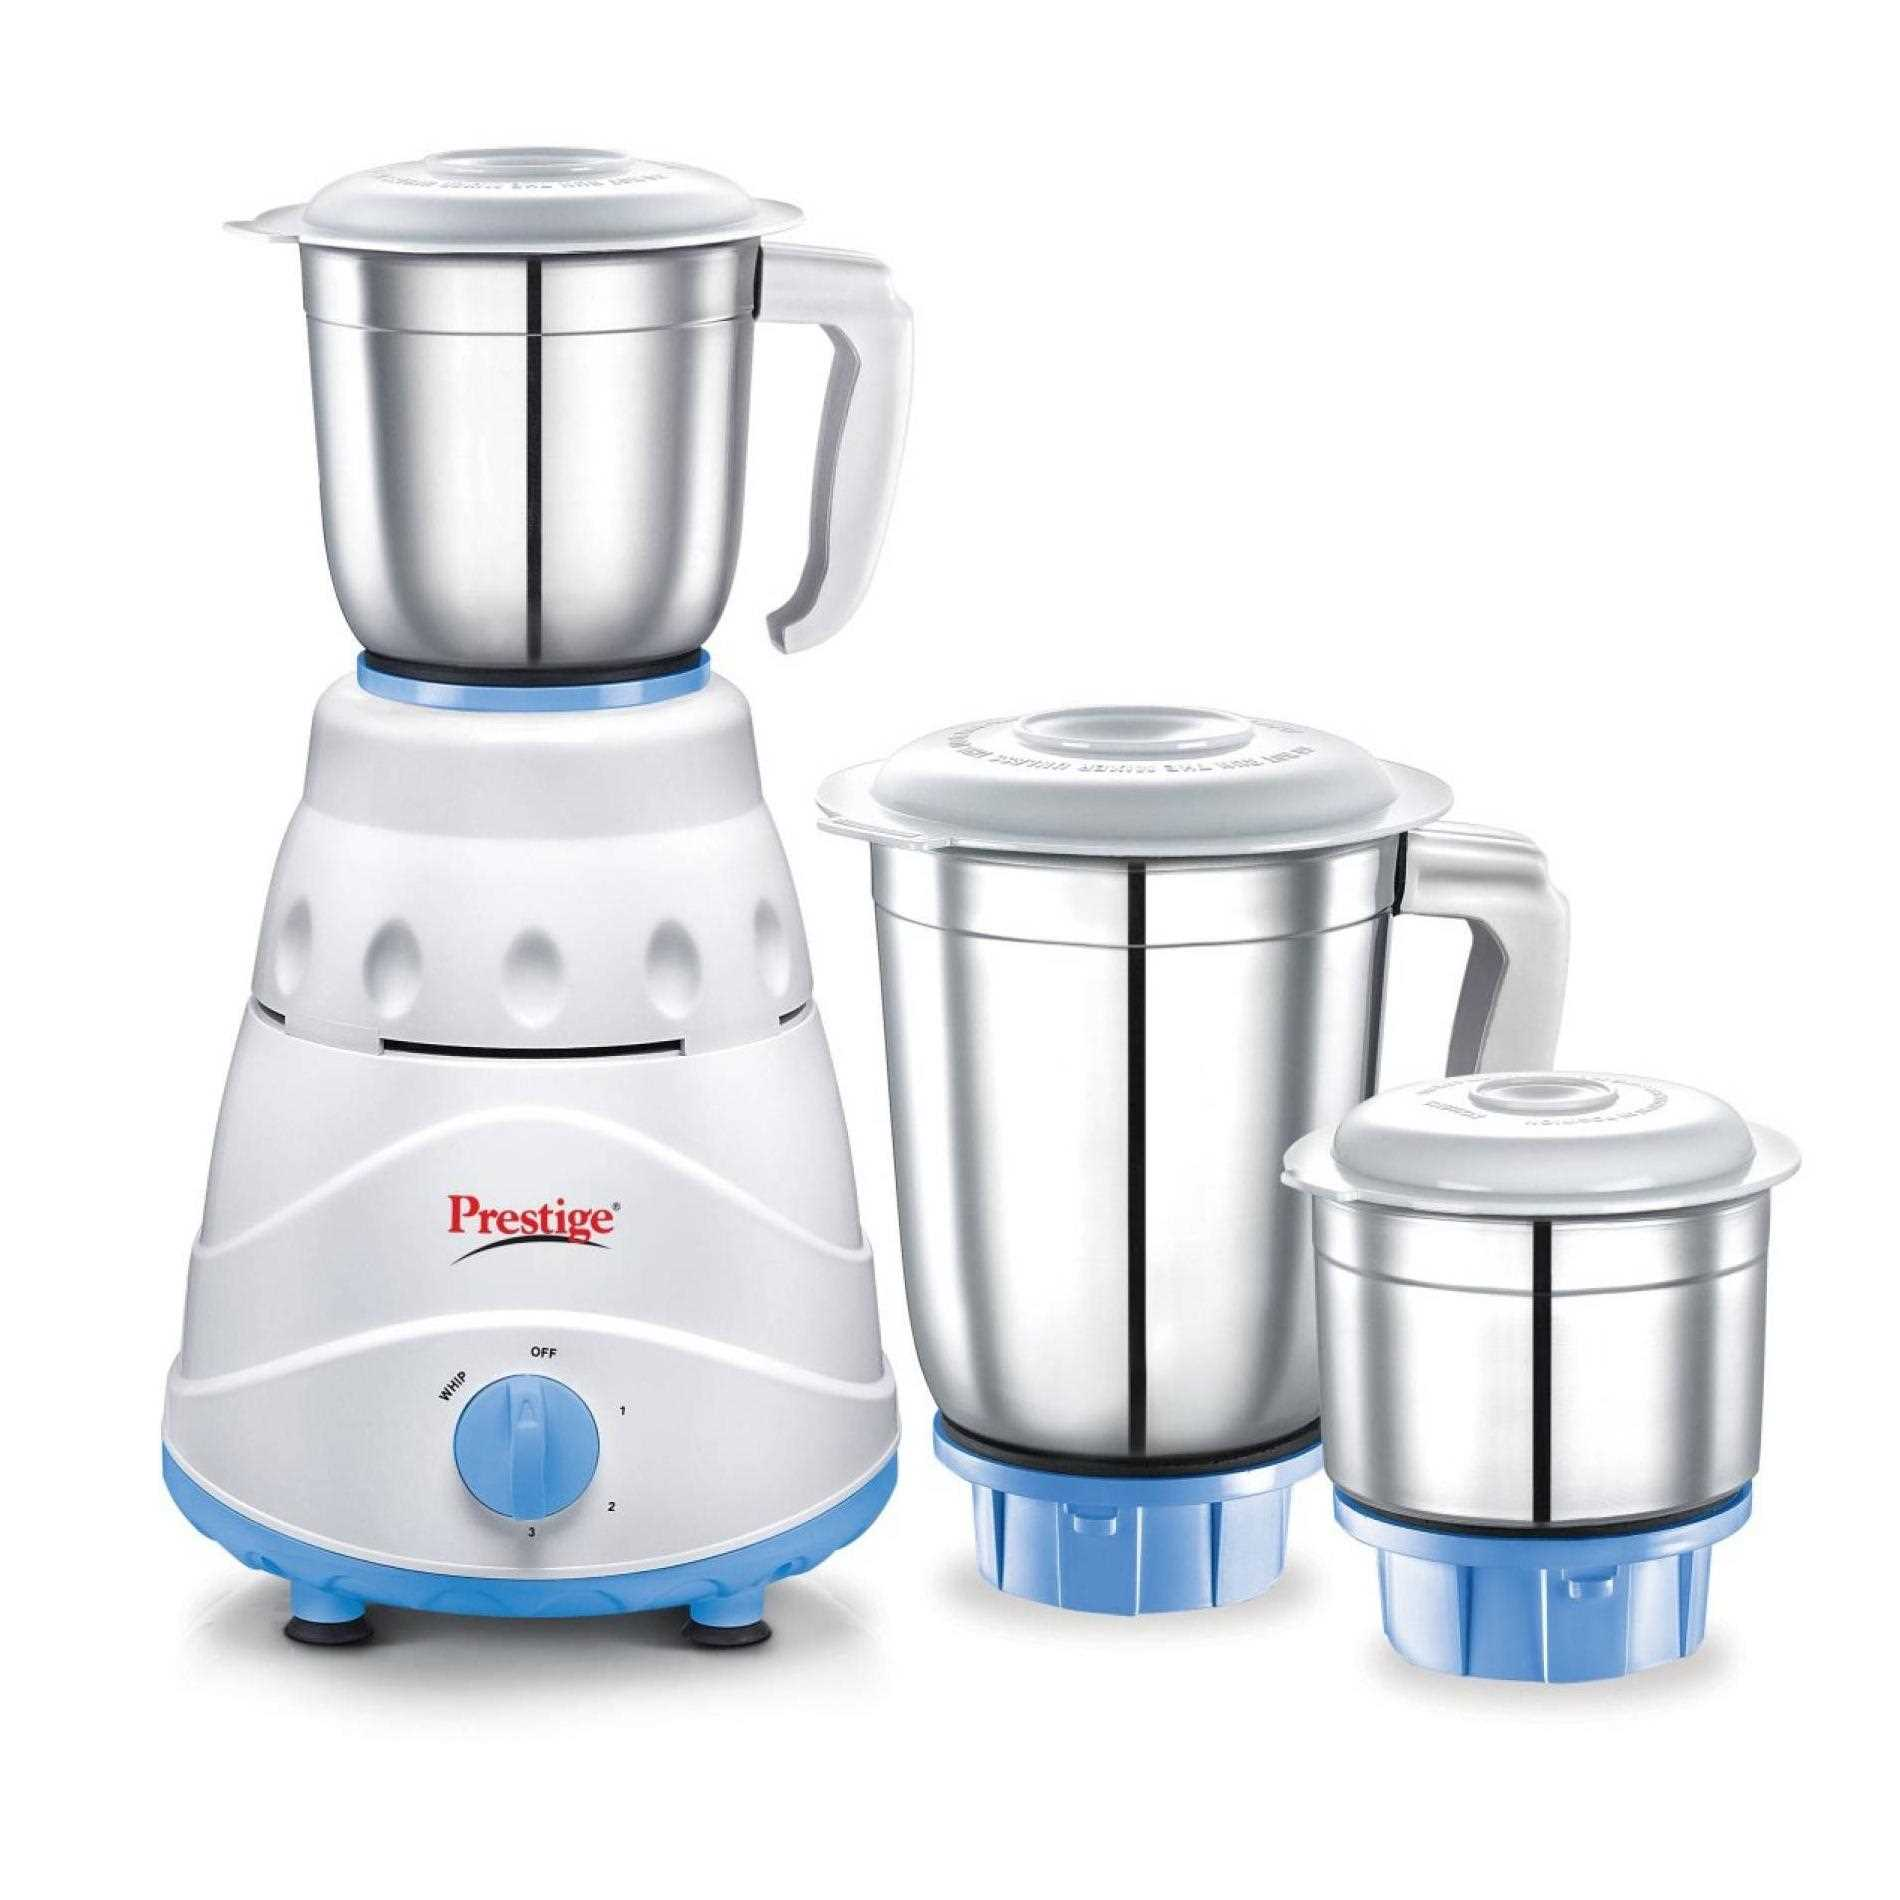 300a5dc181d Prestige Atlas 550 W Mixer Grinder Price  3 Jun 2019